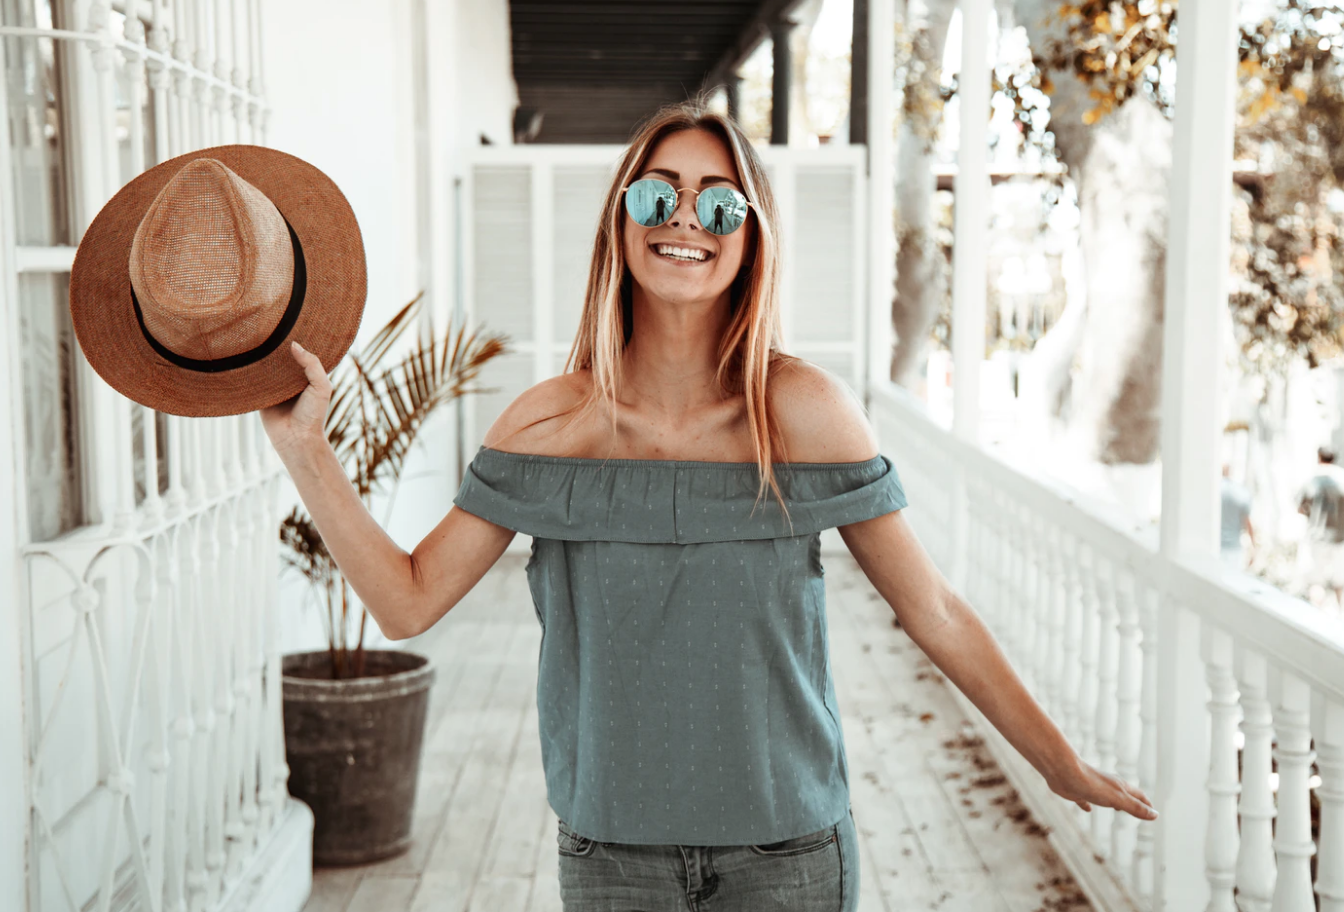 afford tuition costs, woman holding hat smiling